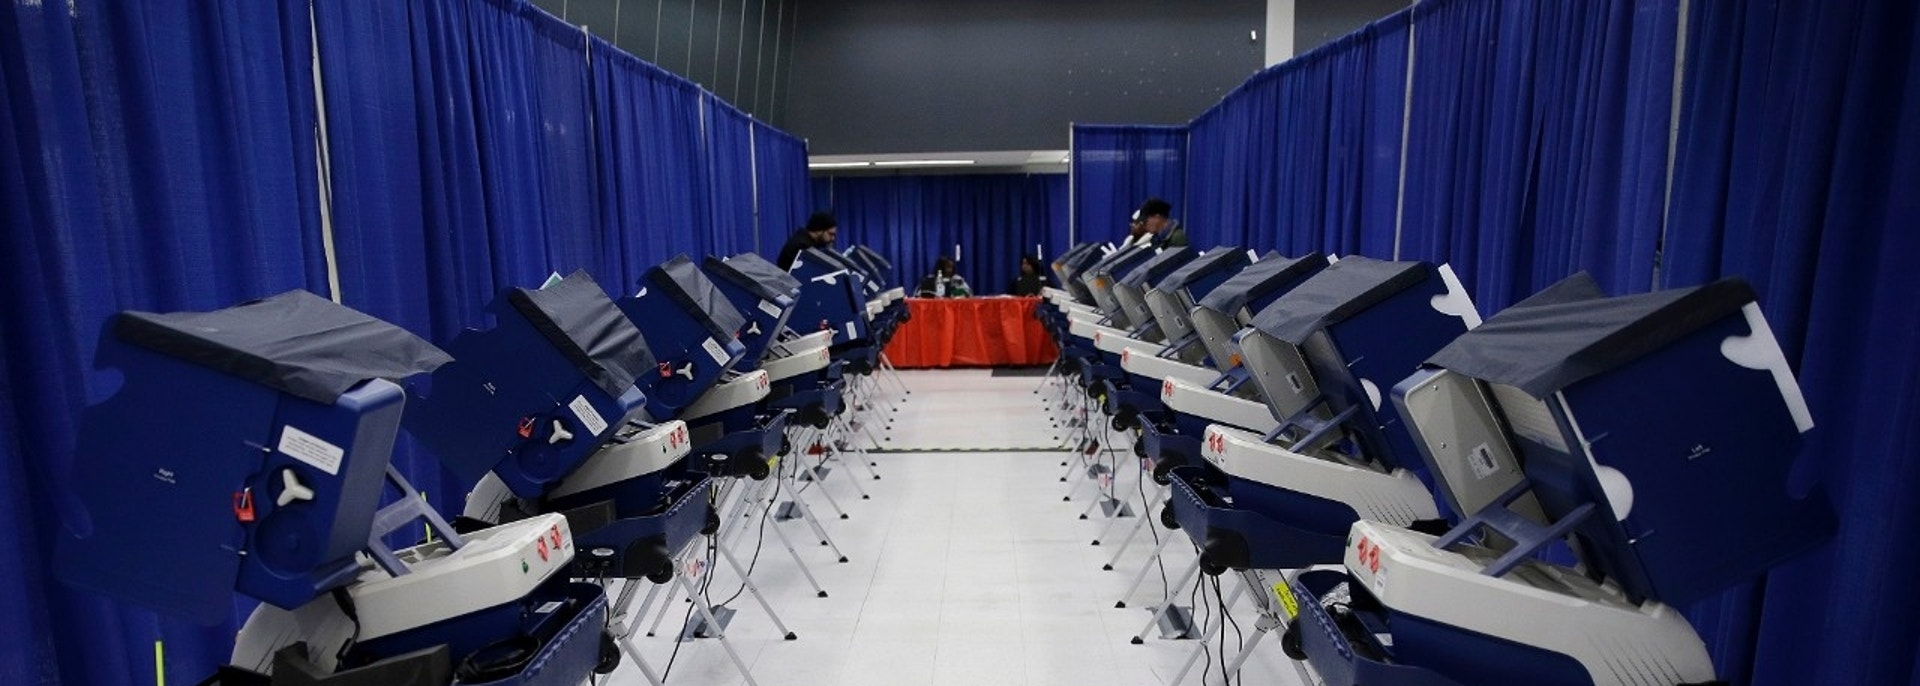 In this Tuesday, March 13, 2018 photo, voters cast their ballots in Illinois primary elections at the city's new early voting super site in downtown Chicago. In Illinois, attempts by hackers in the summer of 2016 to alter voter registration information were ultimately unsuccessful, although voter data was viewed. (AP Photo/Kiichiro Sato)